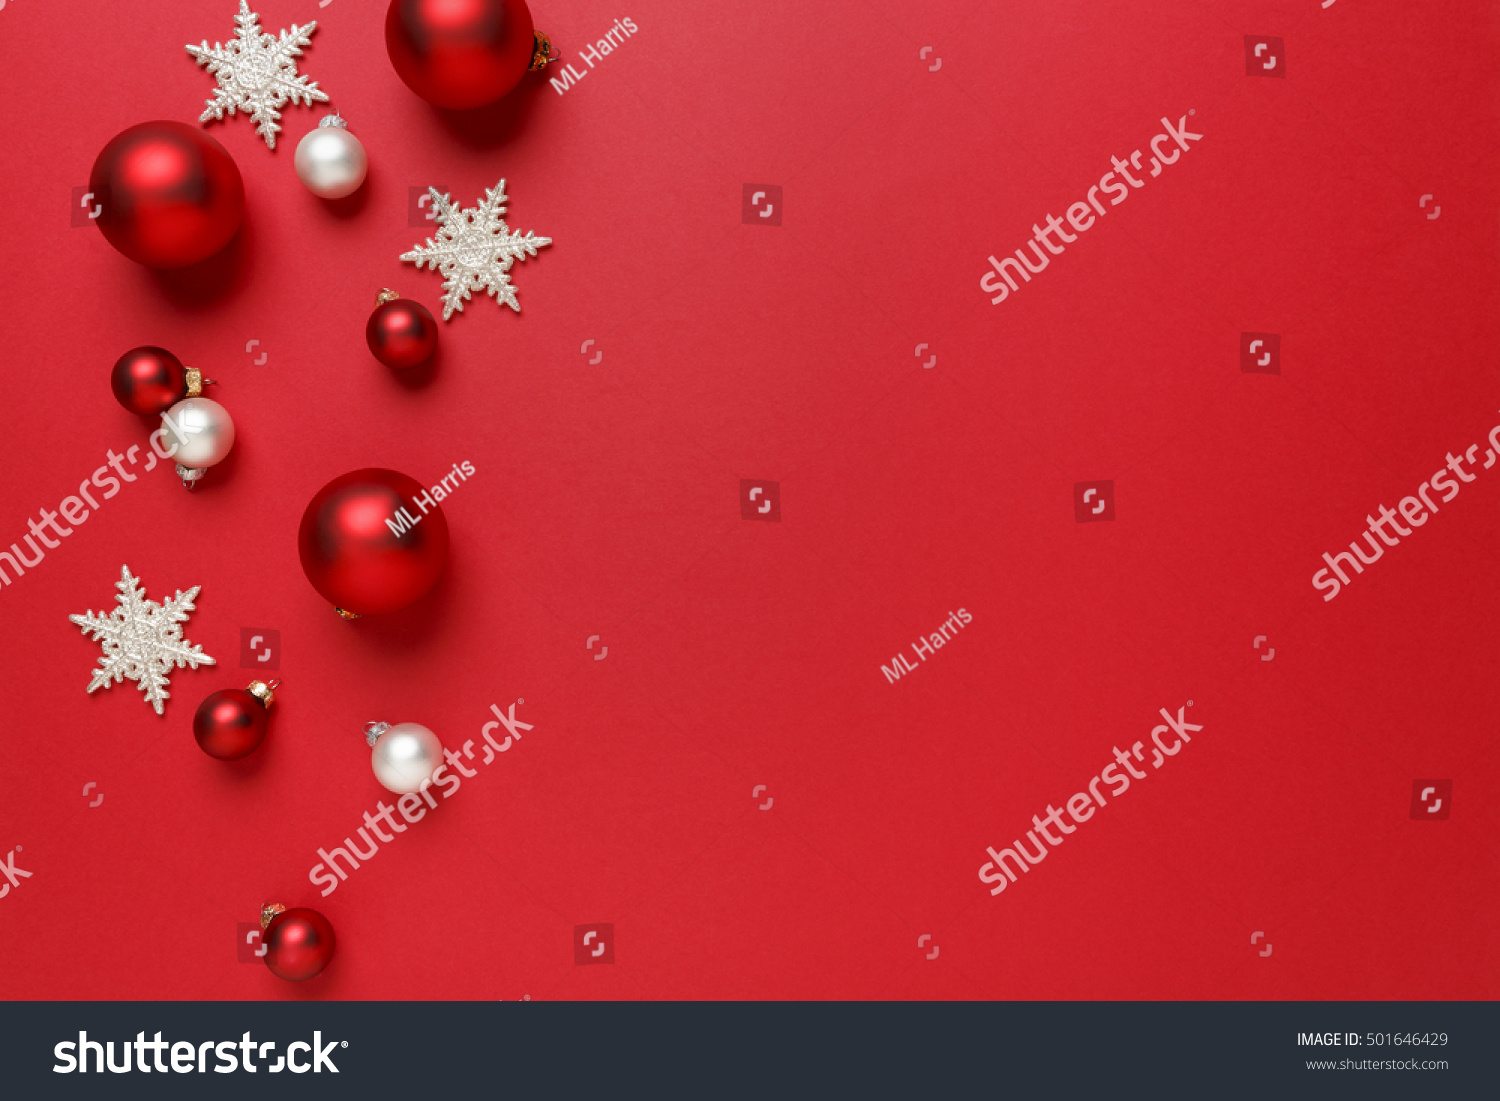 Christmas ornaments decorations background classic red